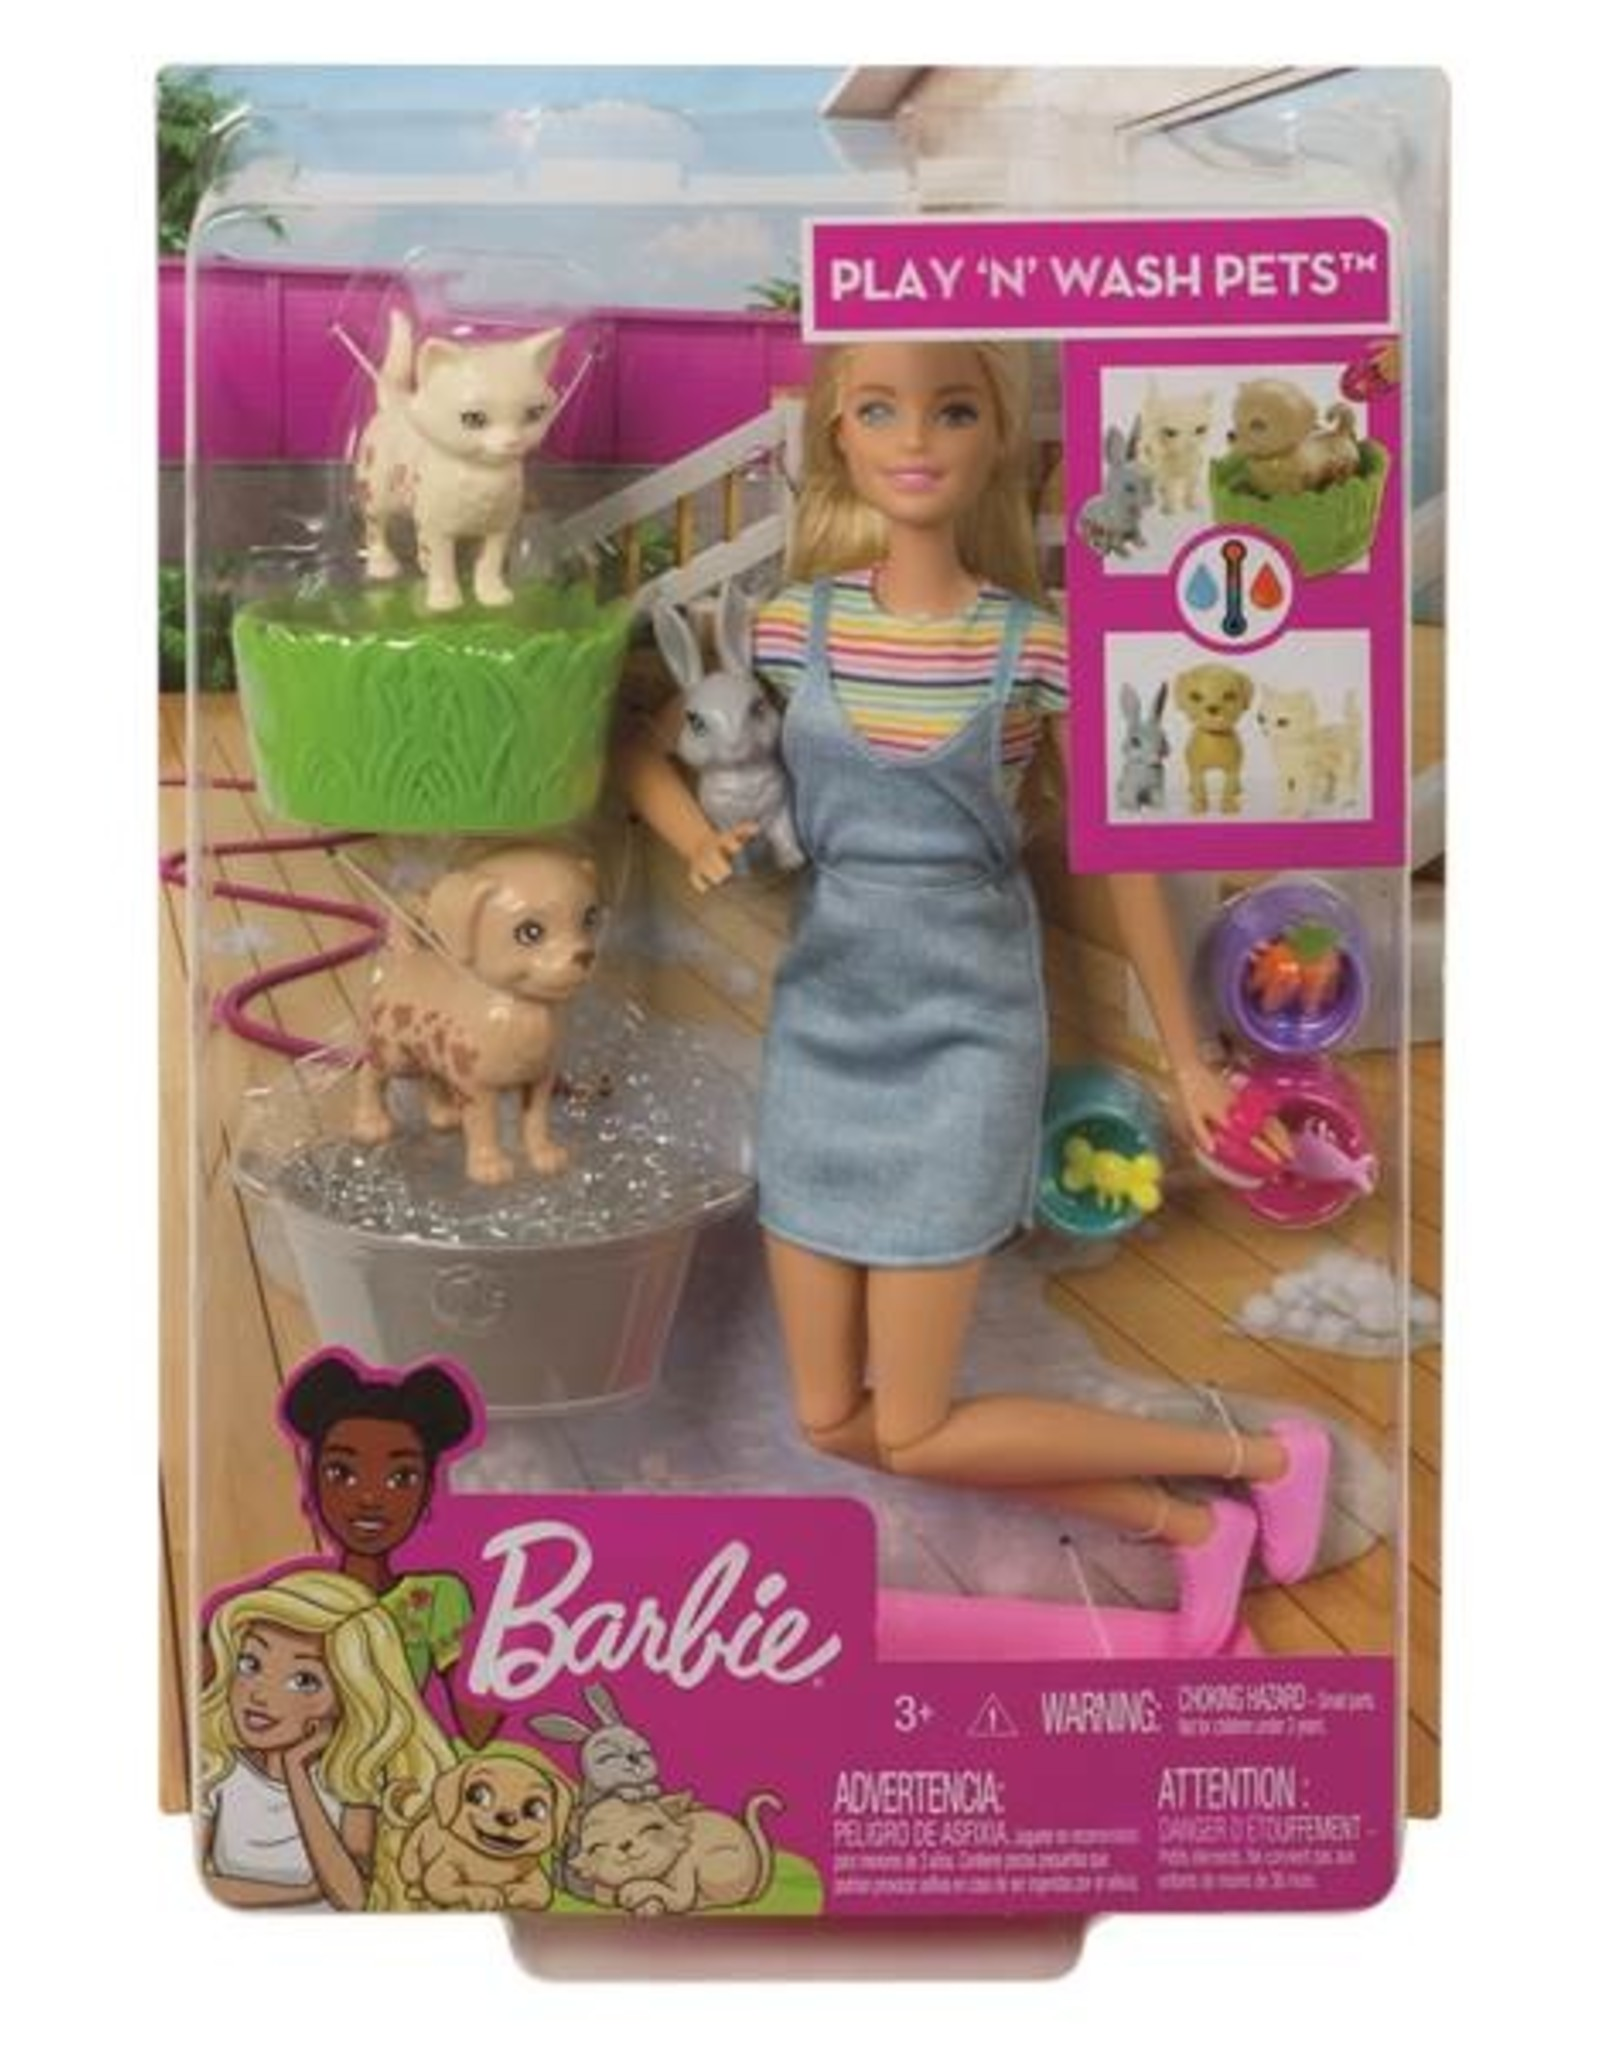 Barbie Barbie Play N Wash Pets Doll & Playset